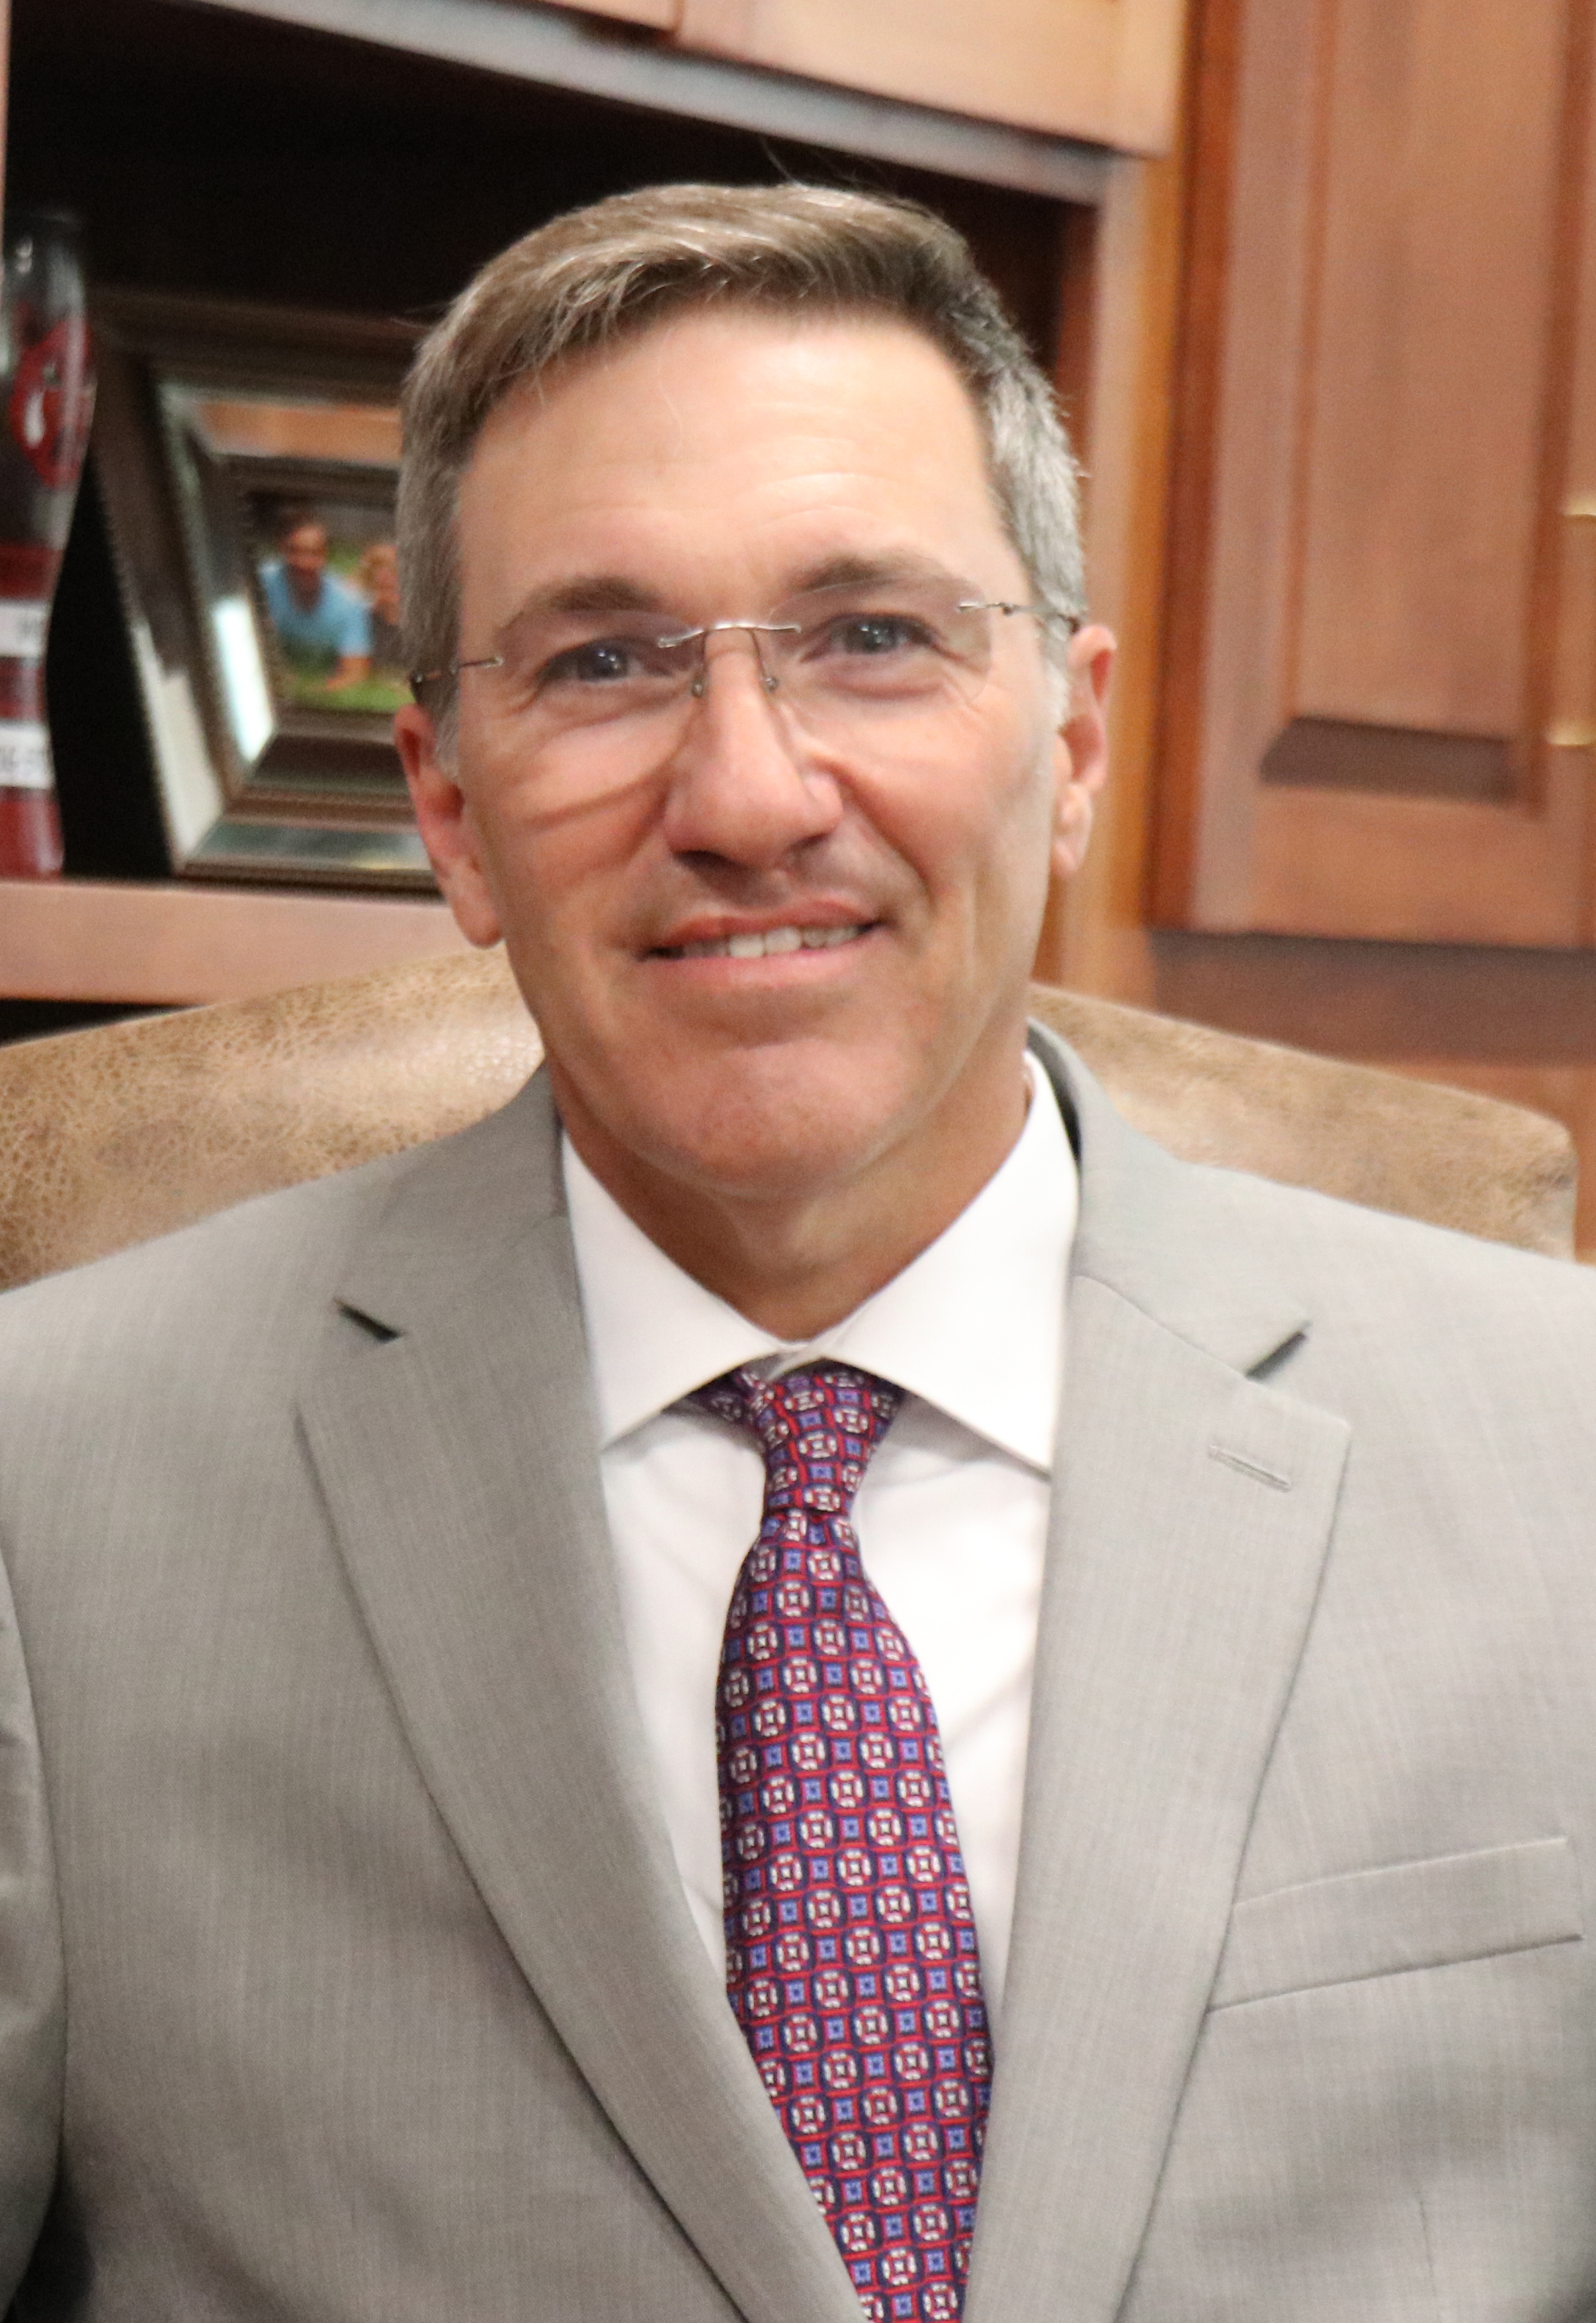 Photo of Dr. Jared Cleveland.